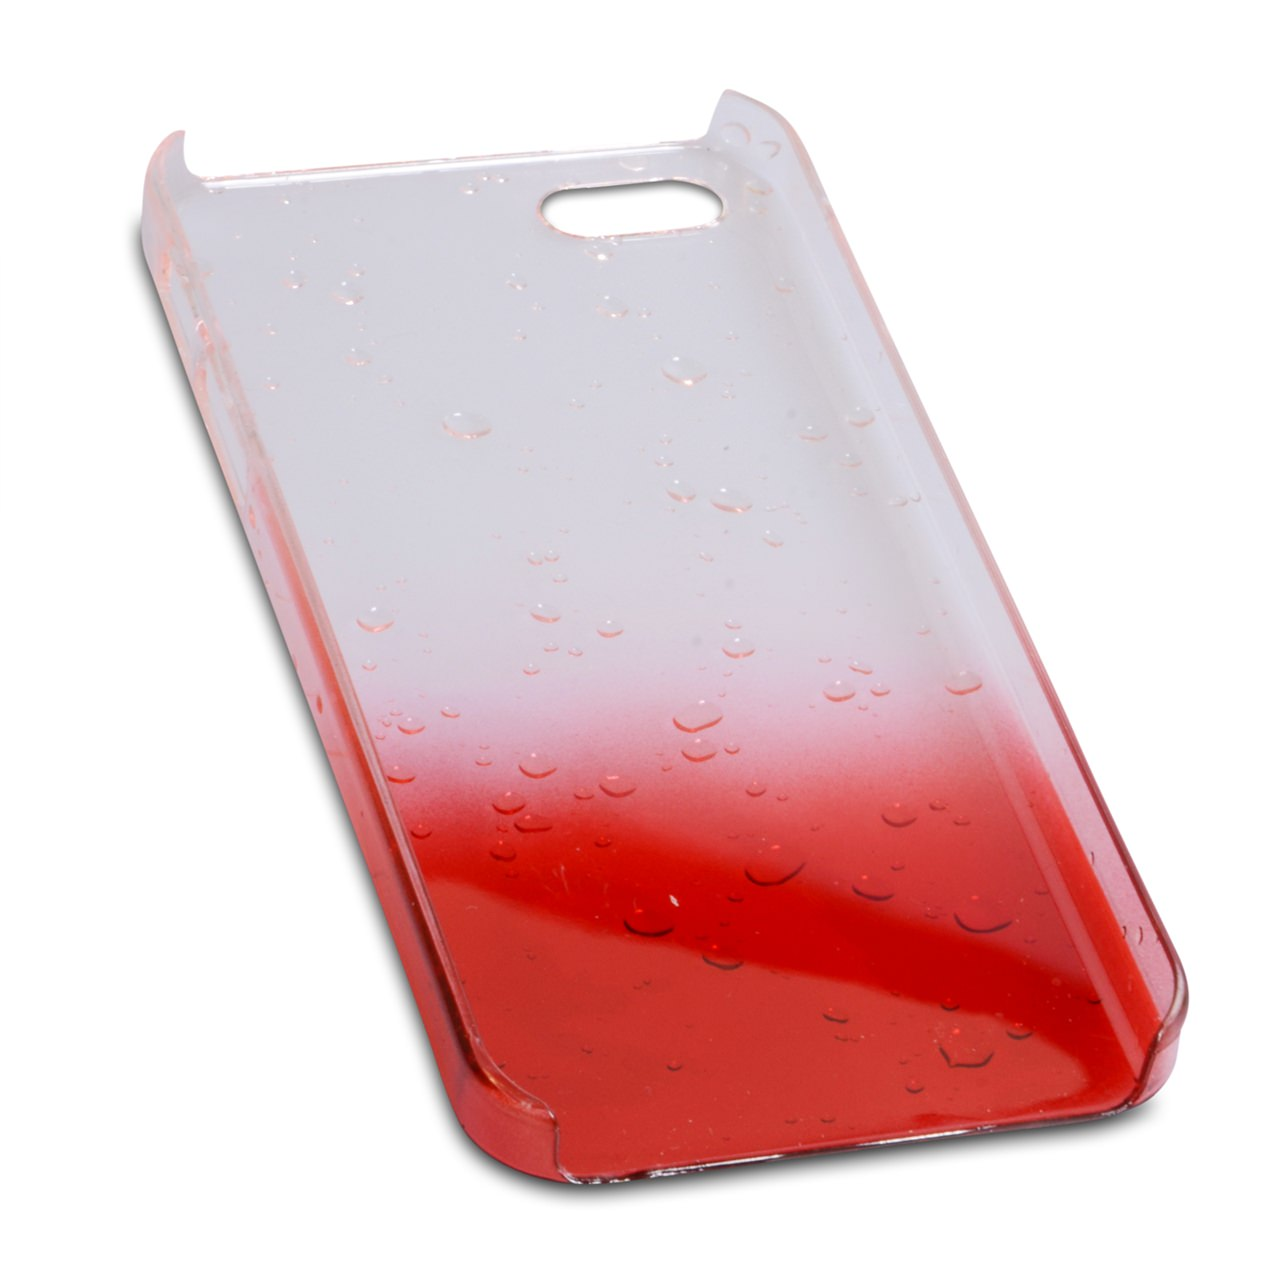 YouSave Accessories iPhone 5 / 5S Raindrop Hard Case - Red